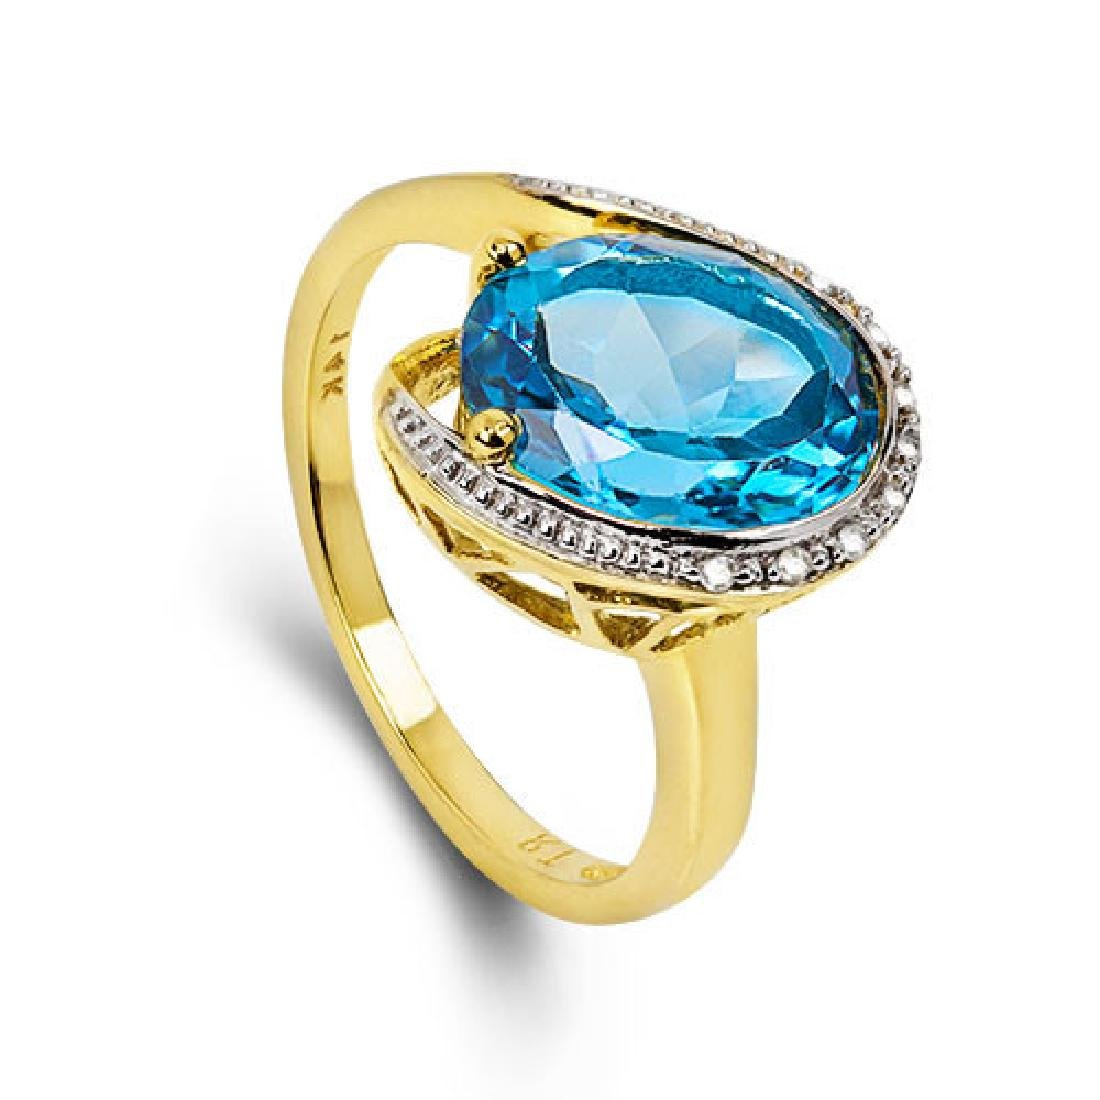 14K WHITE GOLD LONDON BLUE TOPAZ 4.4CT RING WITH - 4